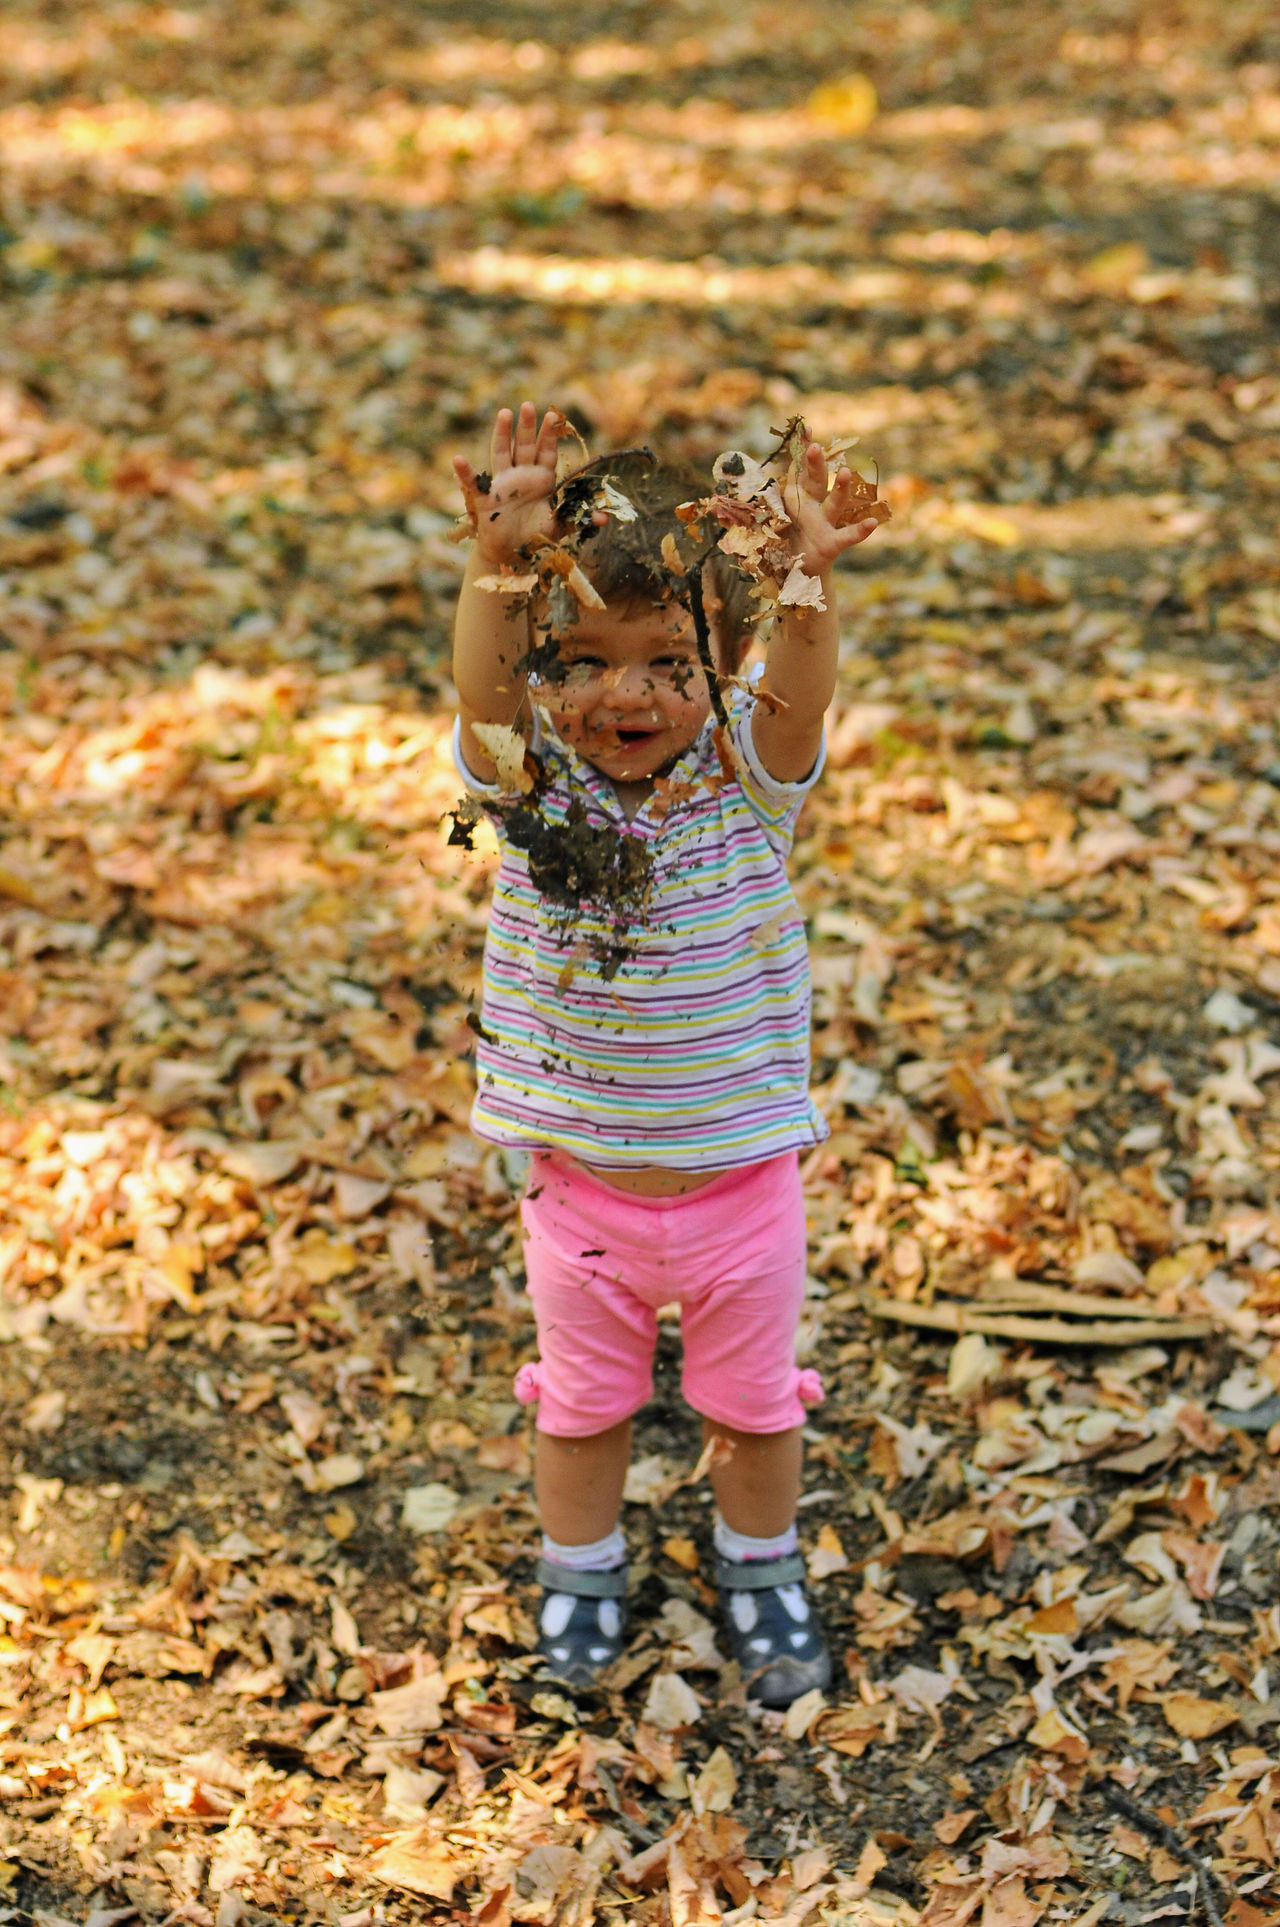 A baby girl is playing with leafs in the nature. Autumn Cheerful Childhood Childhood Memories Children Only Dust Elementary Age Enjoying The Nature Enjoyments Girls Golden Leafs Growing Up Hands Up Hands Up In The Air Joyful Moments Leaf Nature Playing With Nature Pleasure Pleasure Of Life Pleasure Time Throwing Leafs